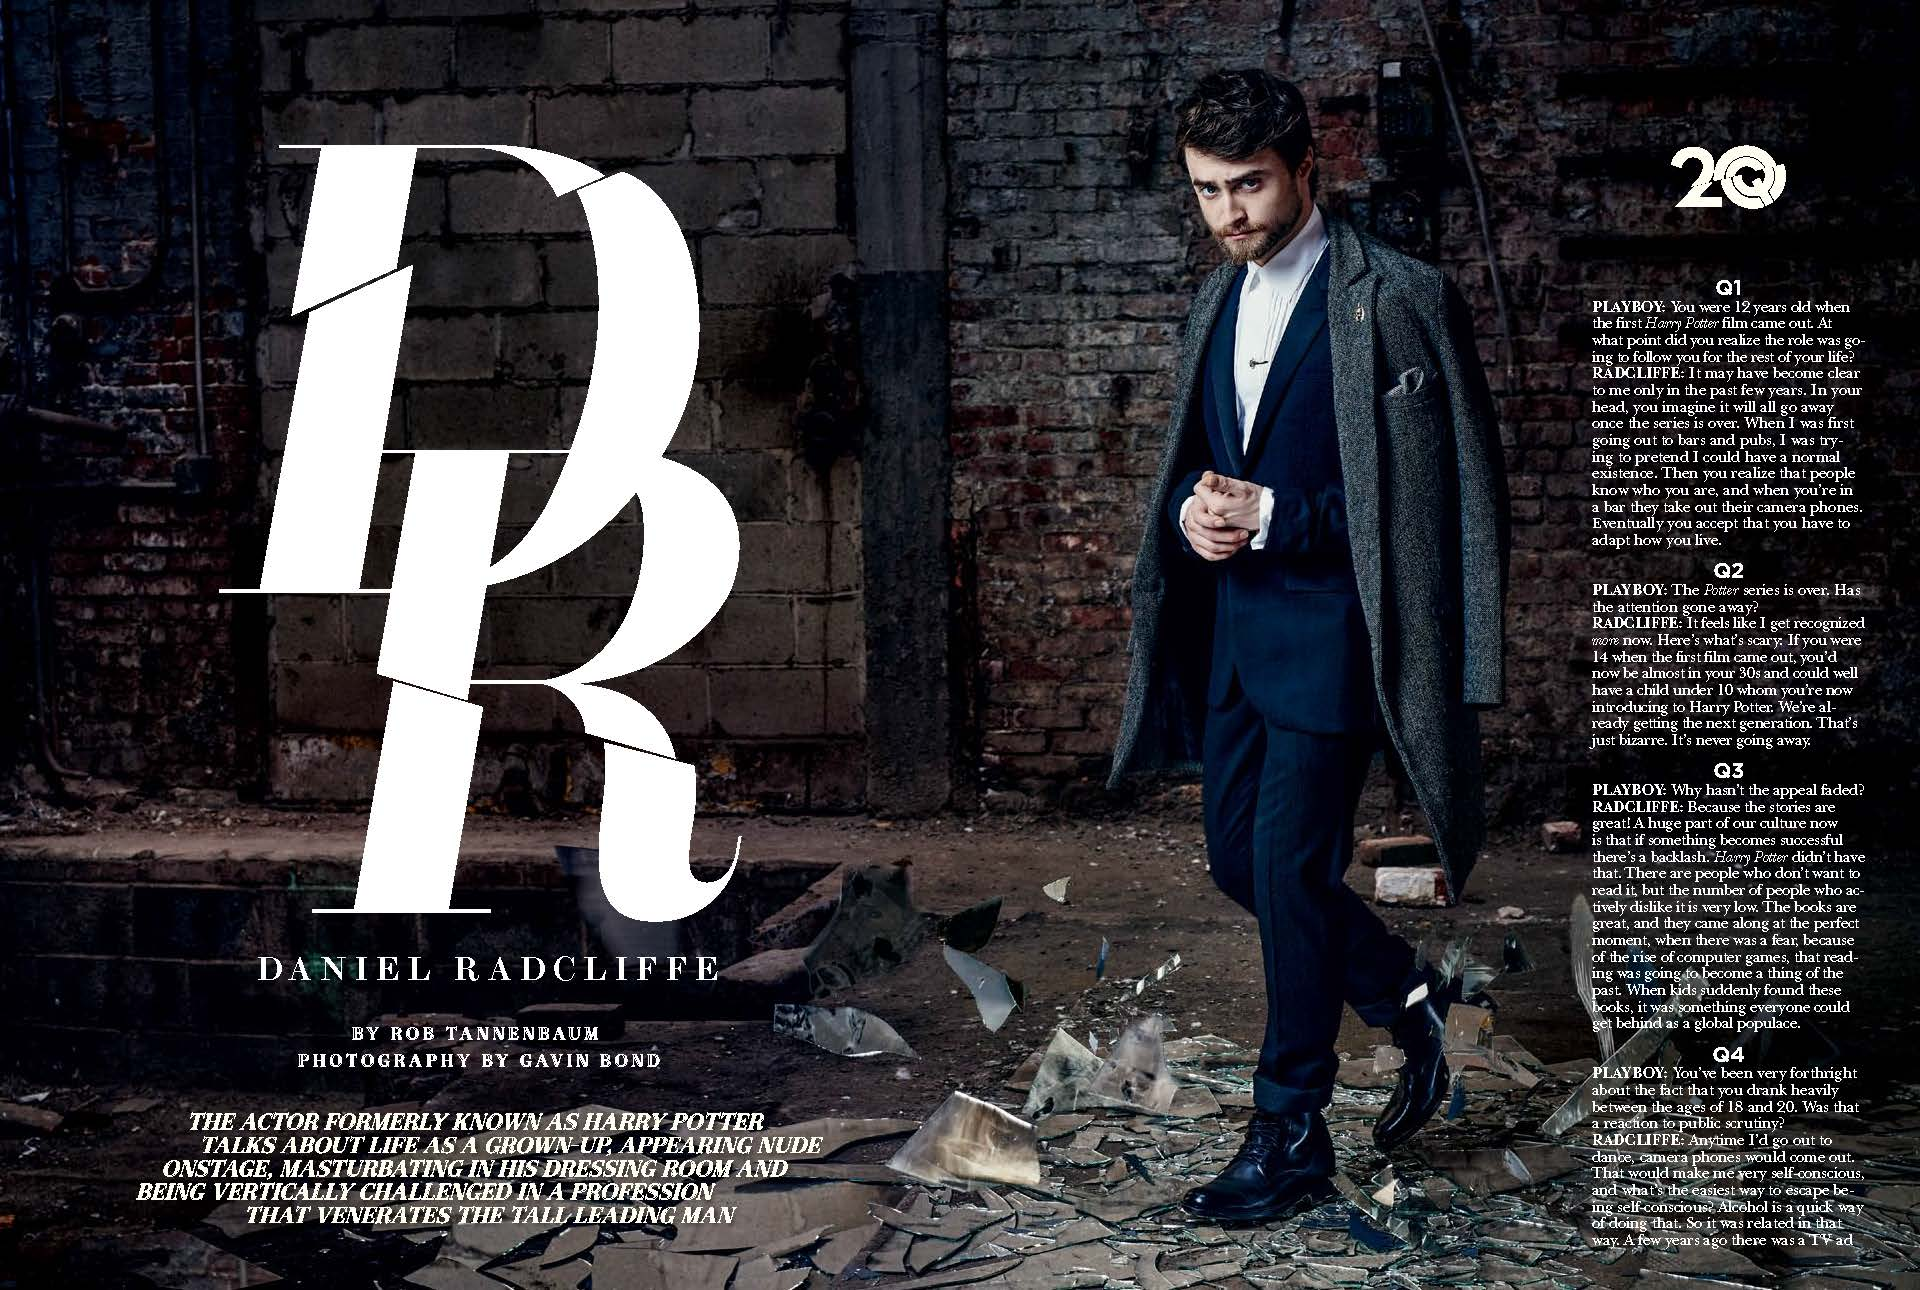 DanielRadcliffe_Page_1.jpg